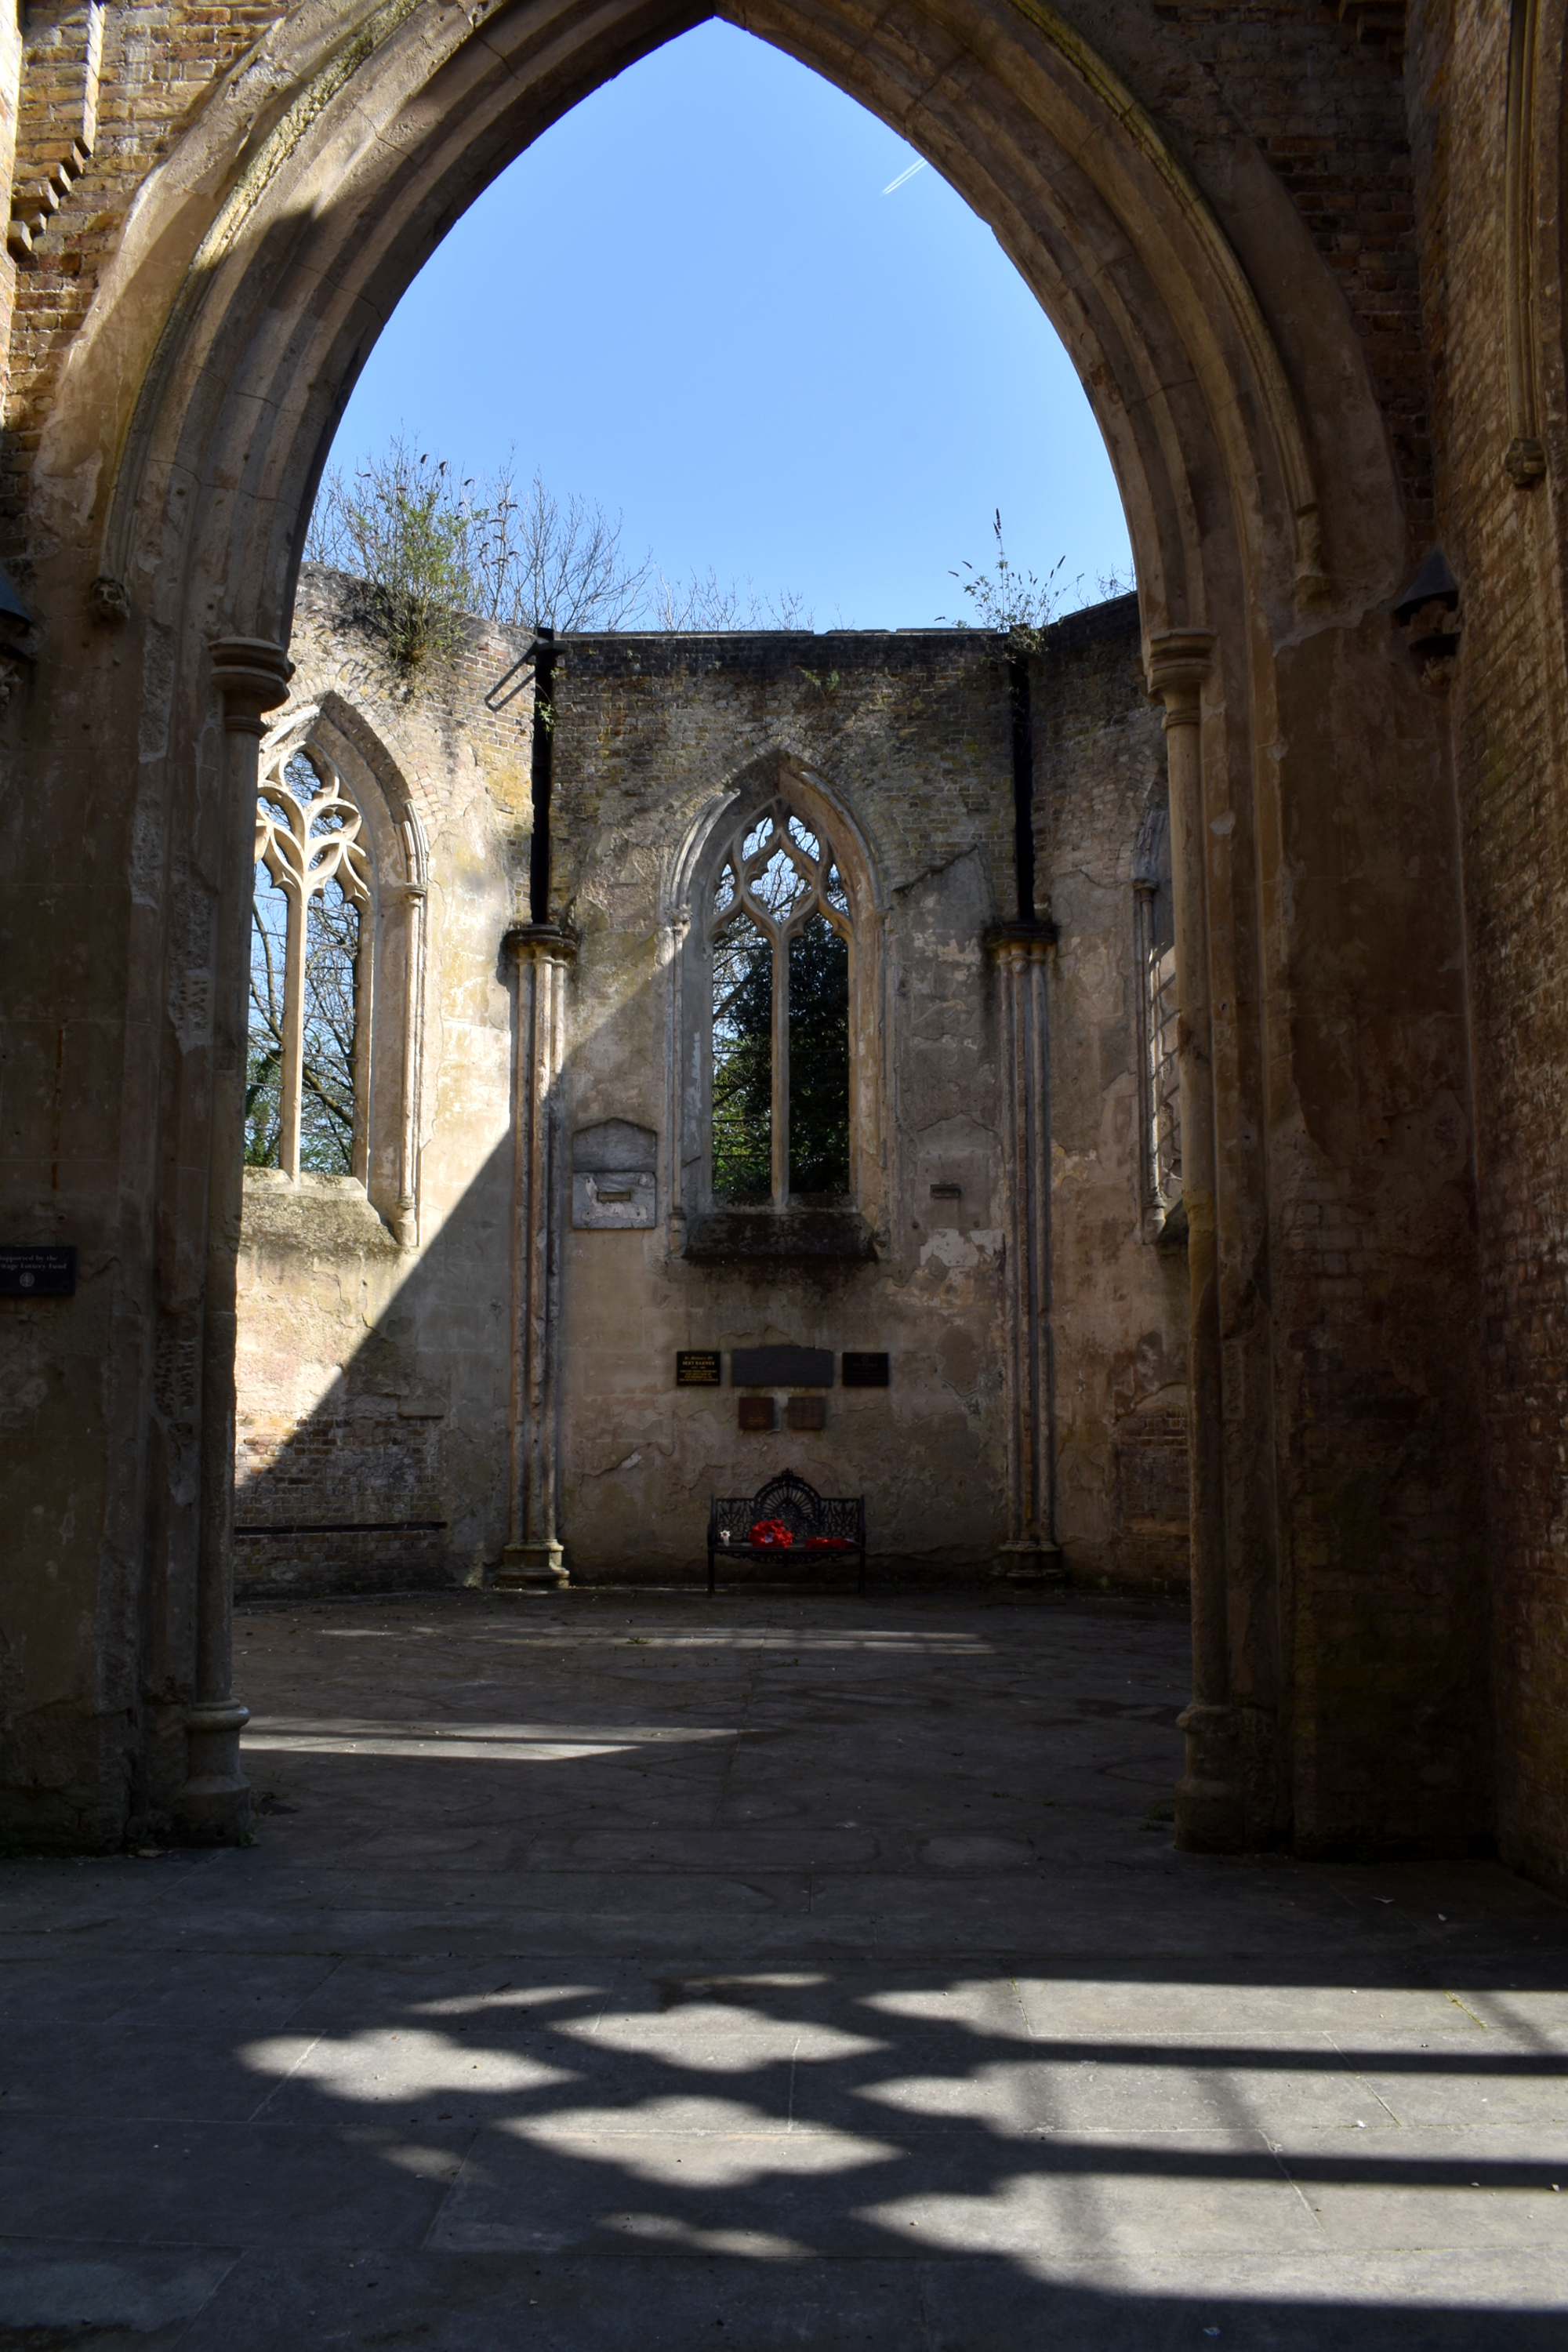 looking inside ruined church on sunny day